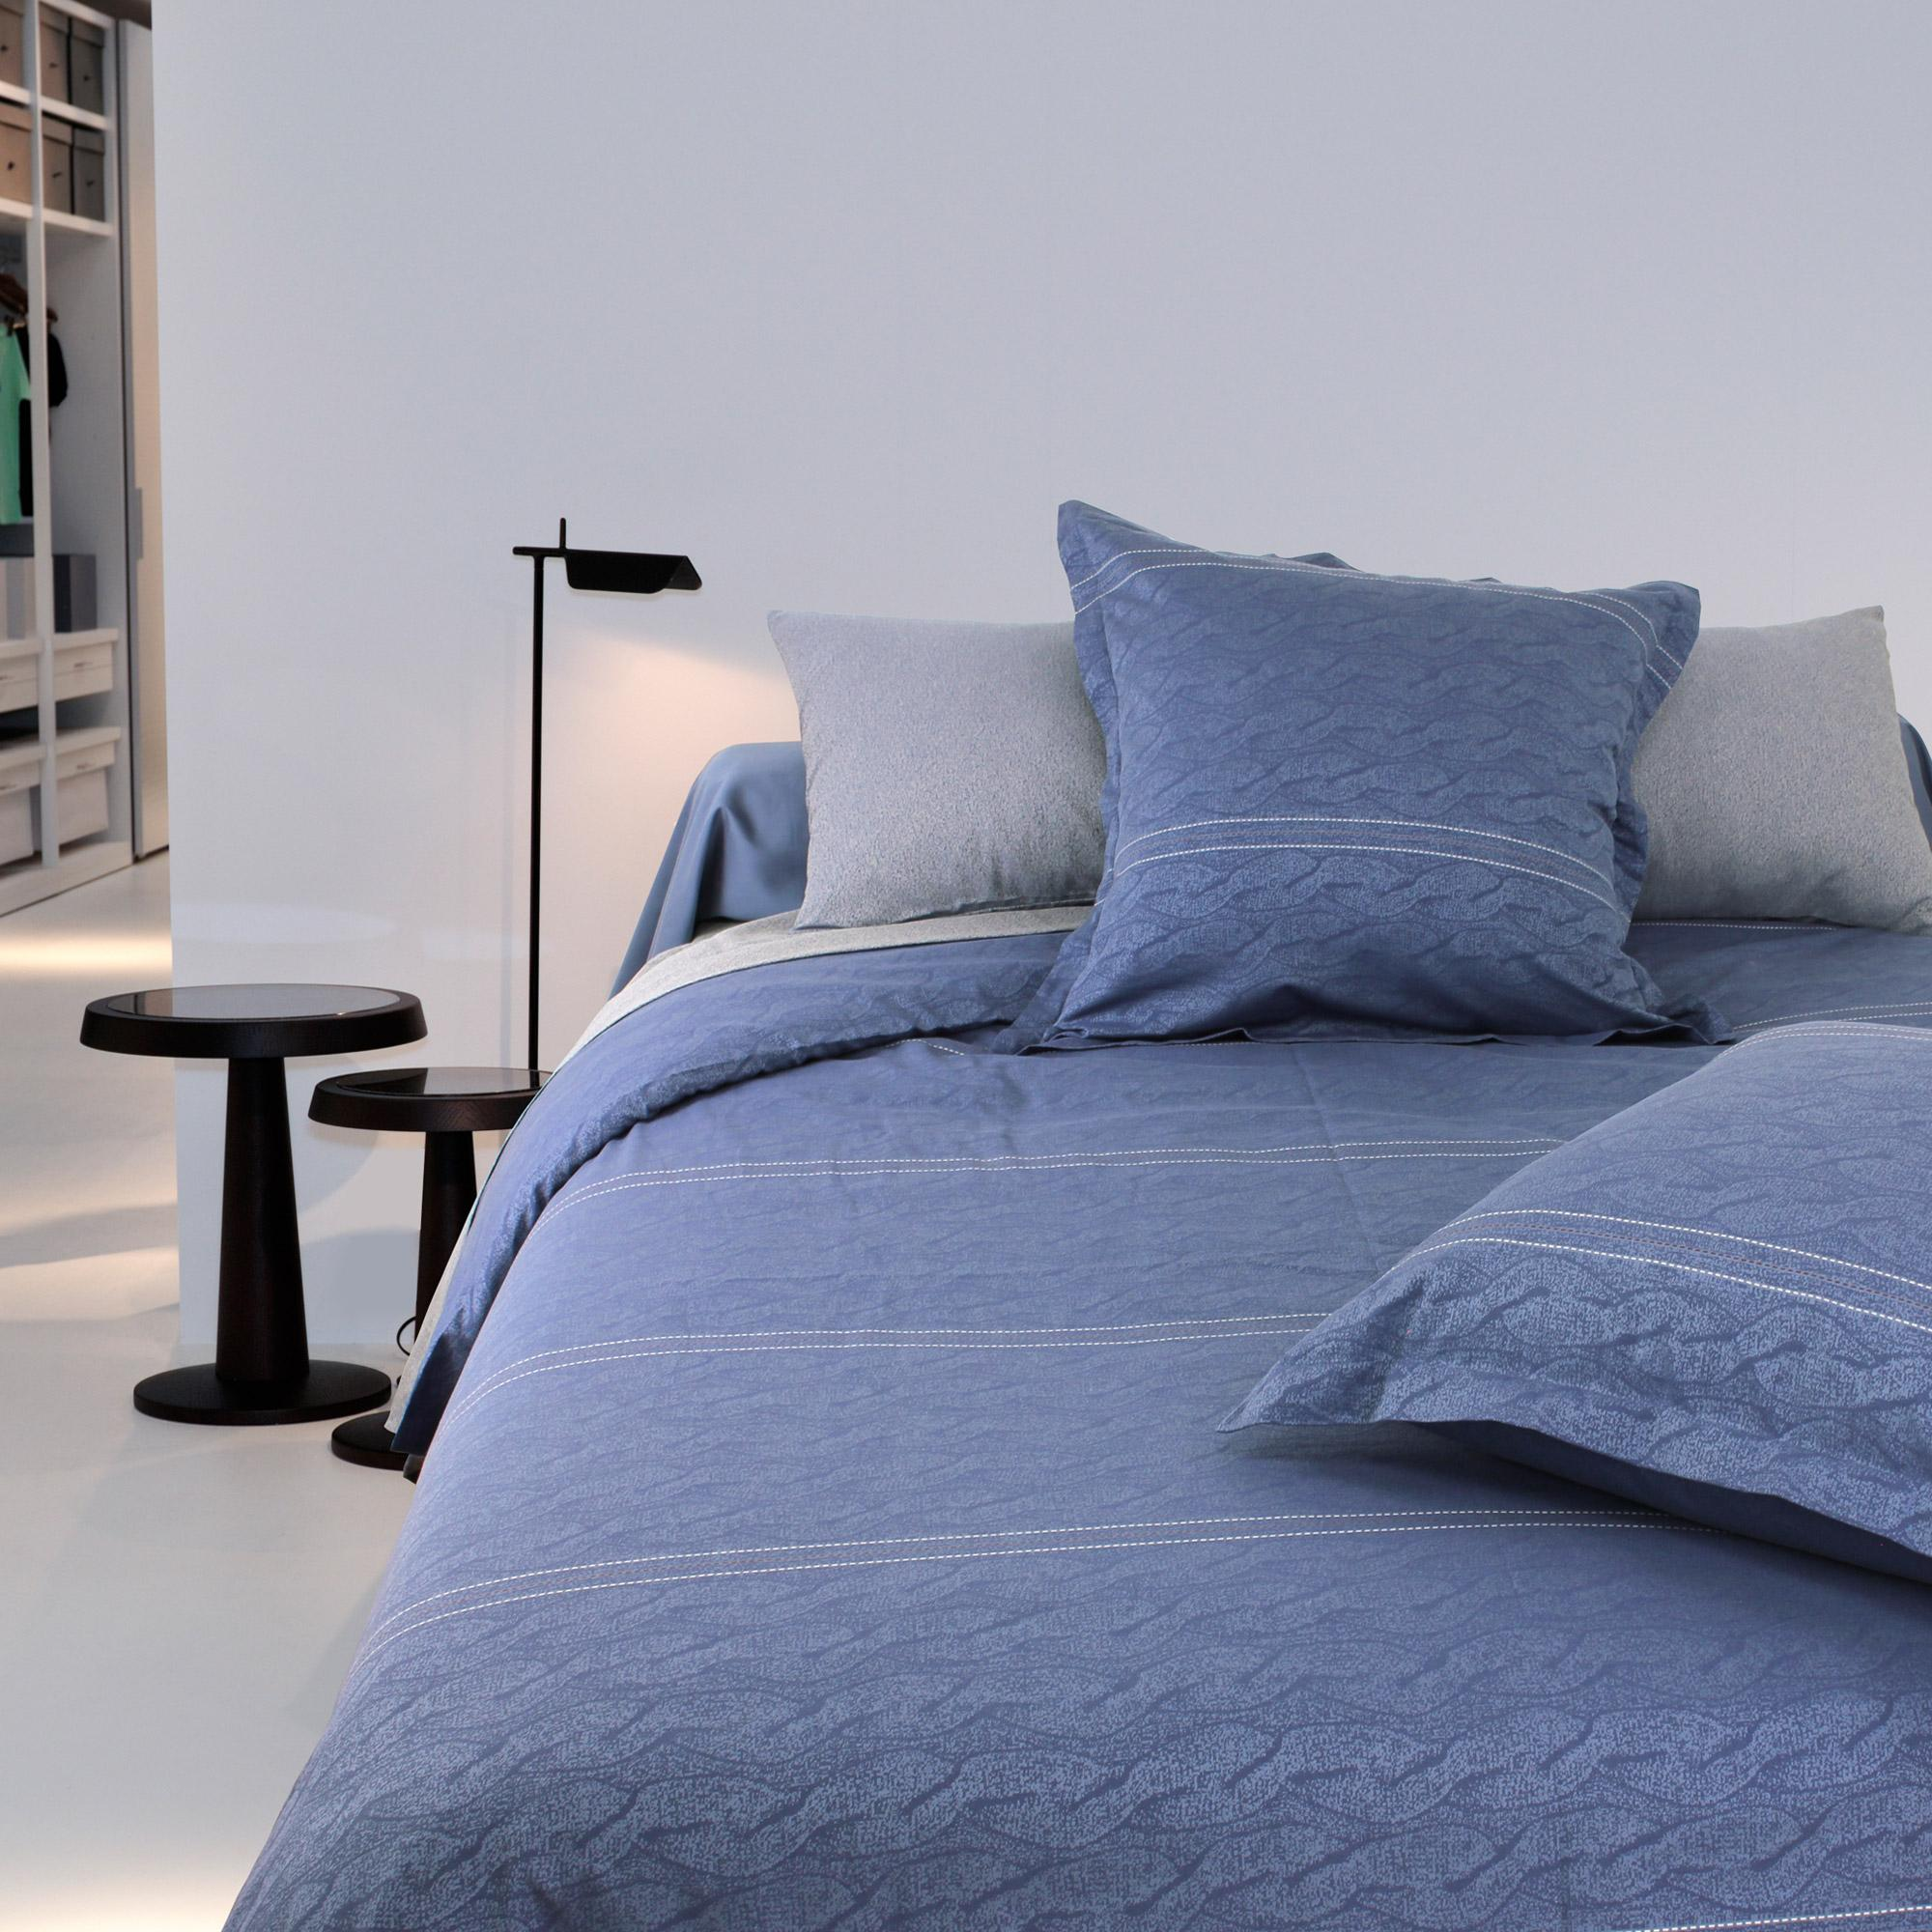 housse de couette 260x240 satin de coton vendome bleu fonc ebay. Black Bedroom Furniture Sets. Home Design Ideas